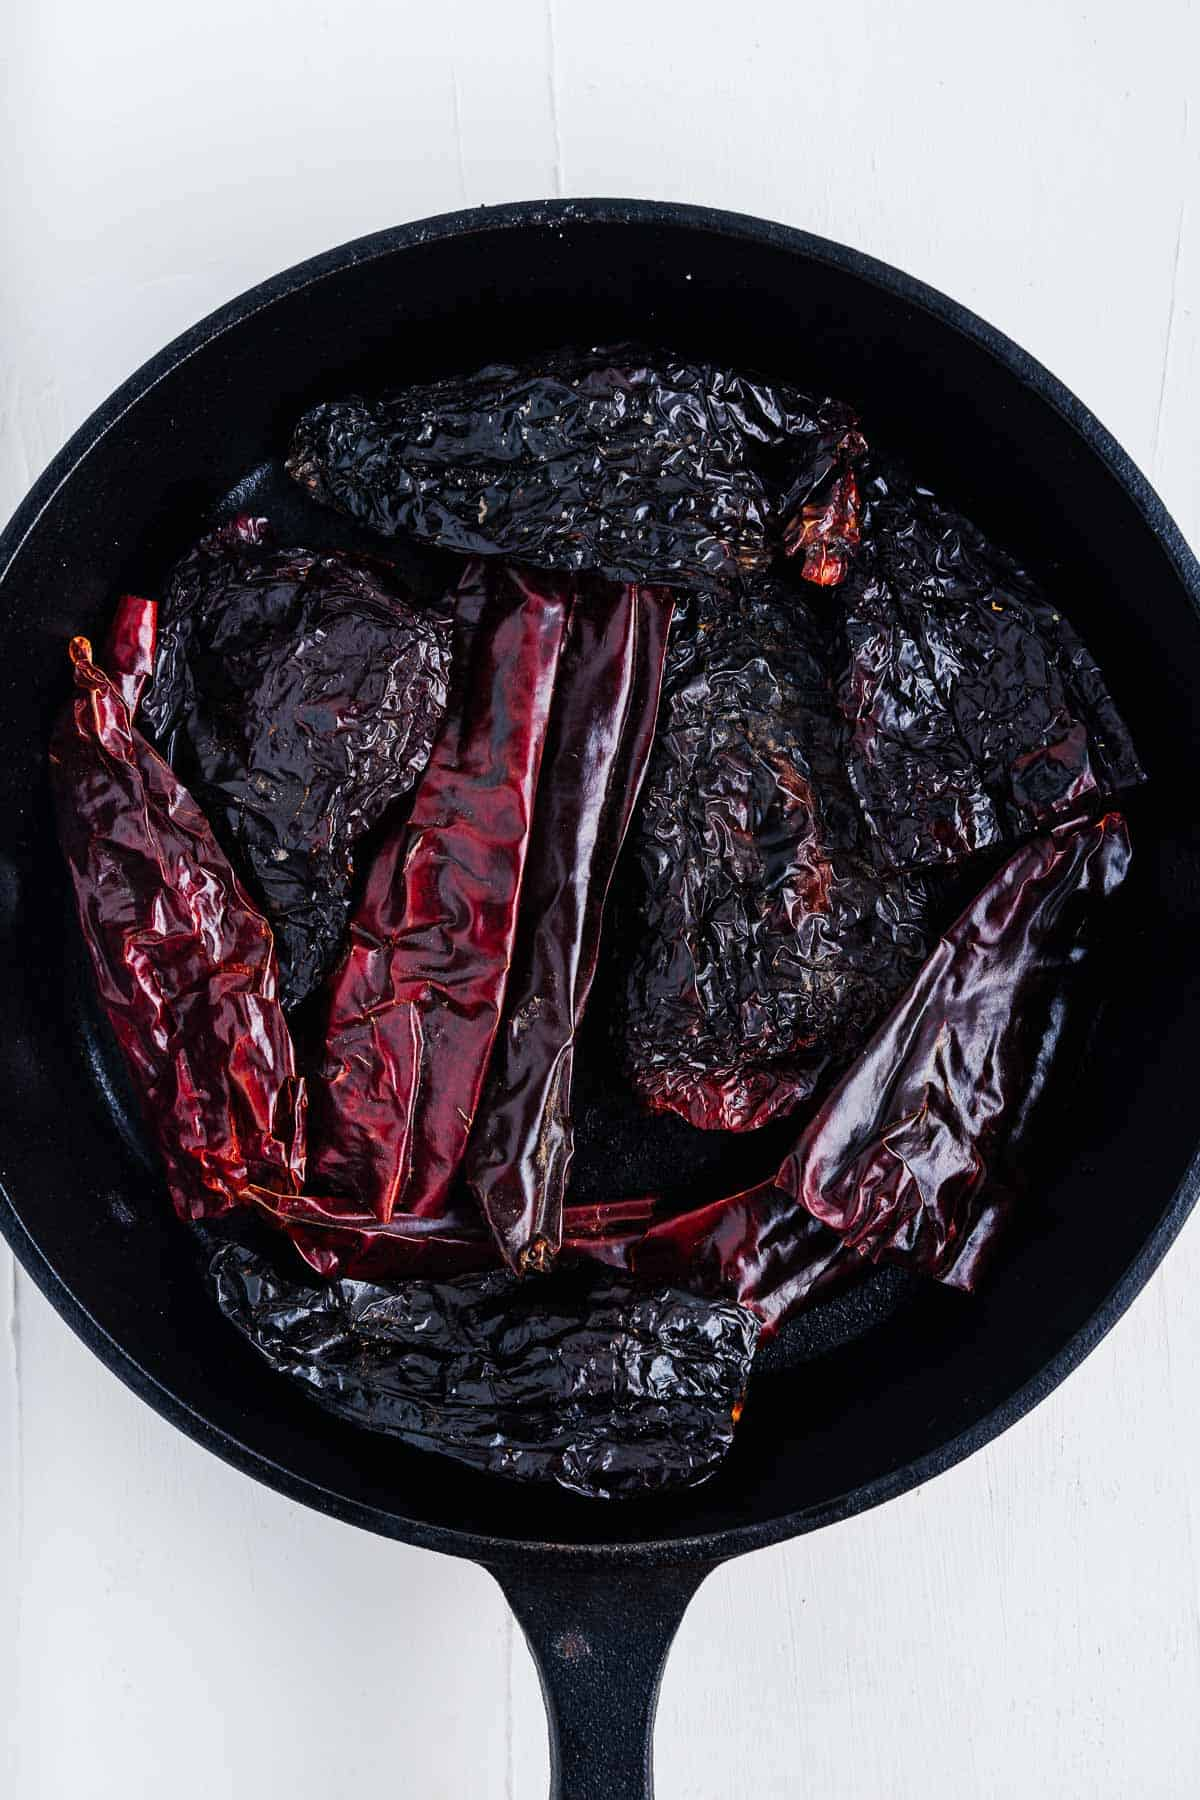 Chiles in a Cast Iron Skillet